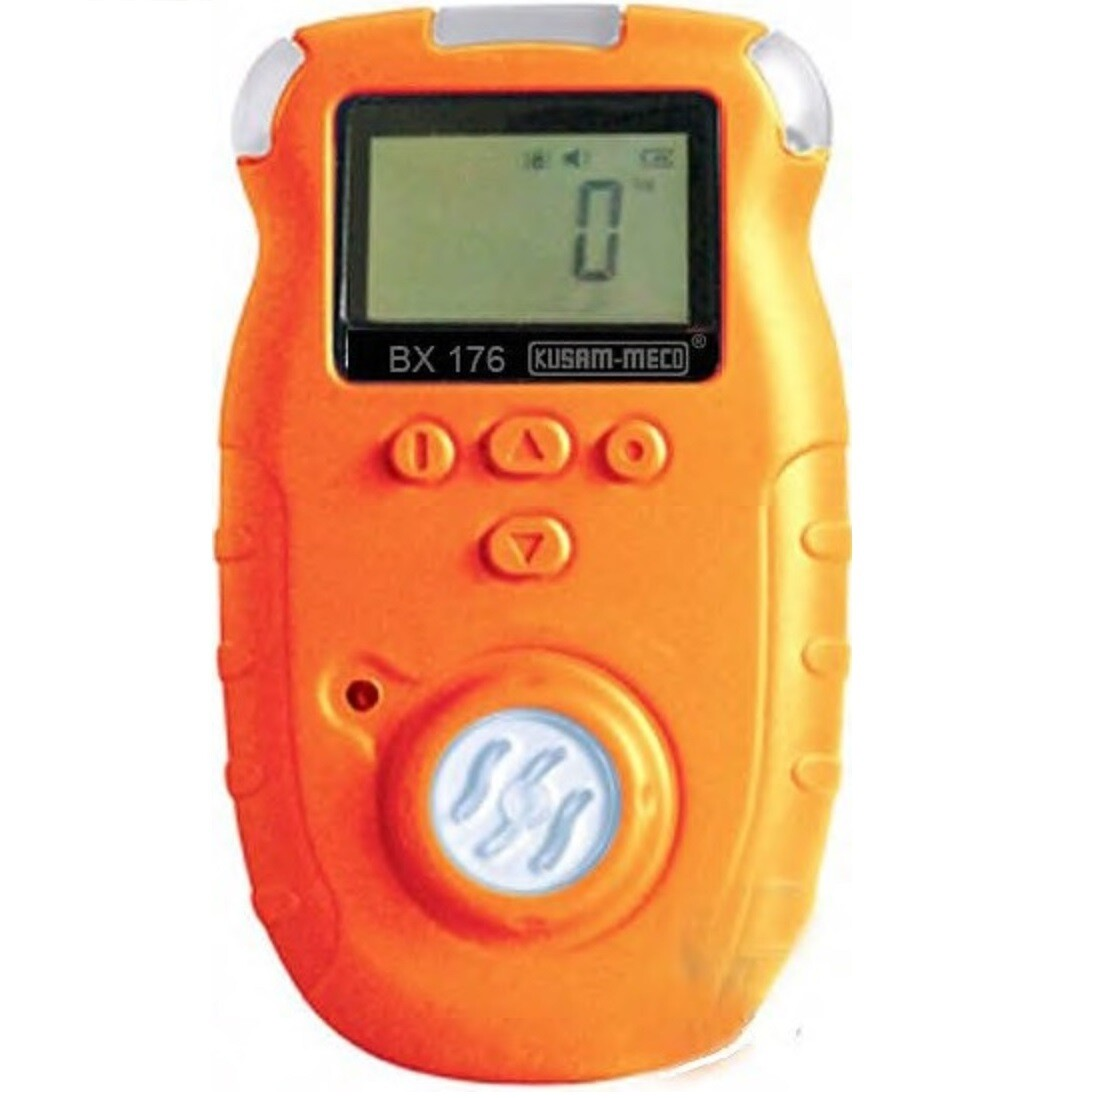 Kusam Meco BX176 - Intrinsically Safe Portable Oxygen Detector